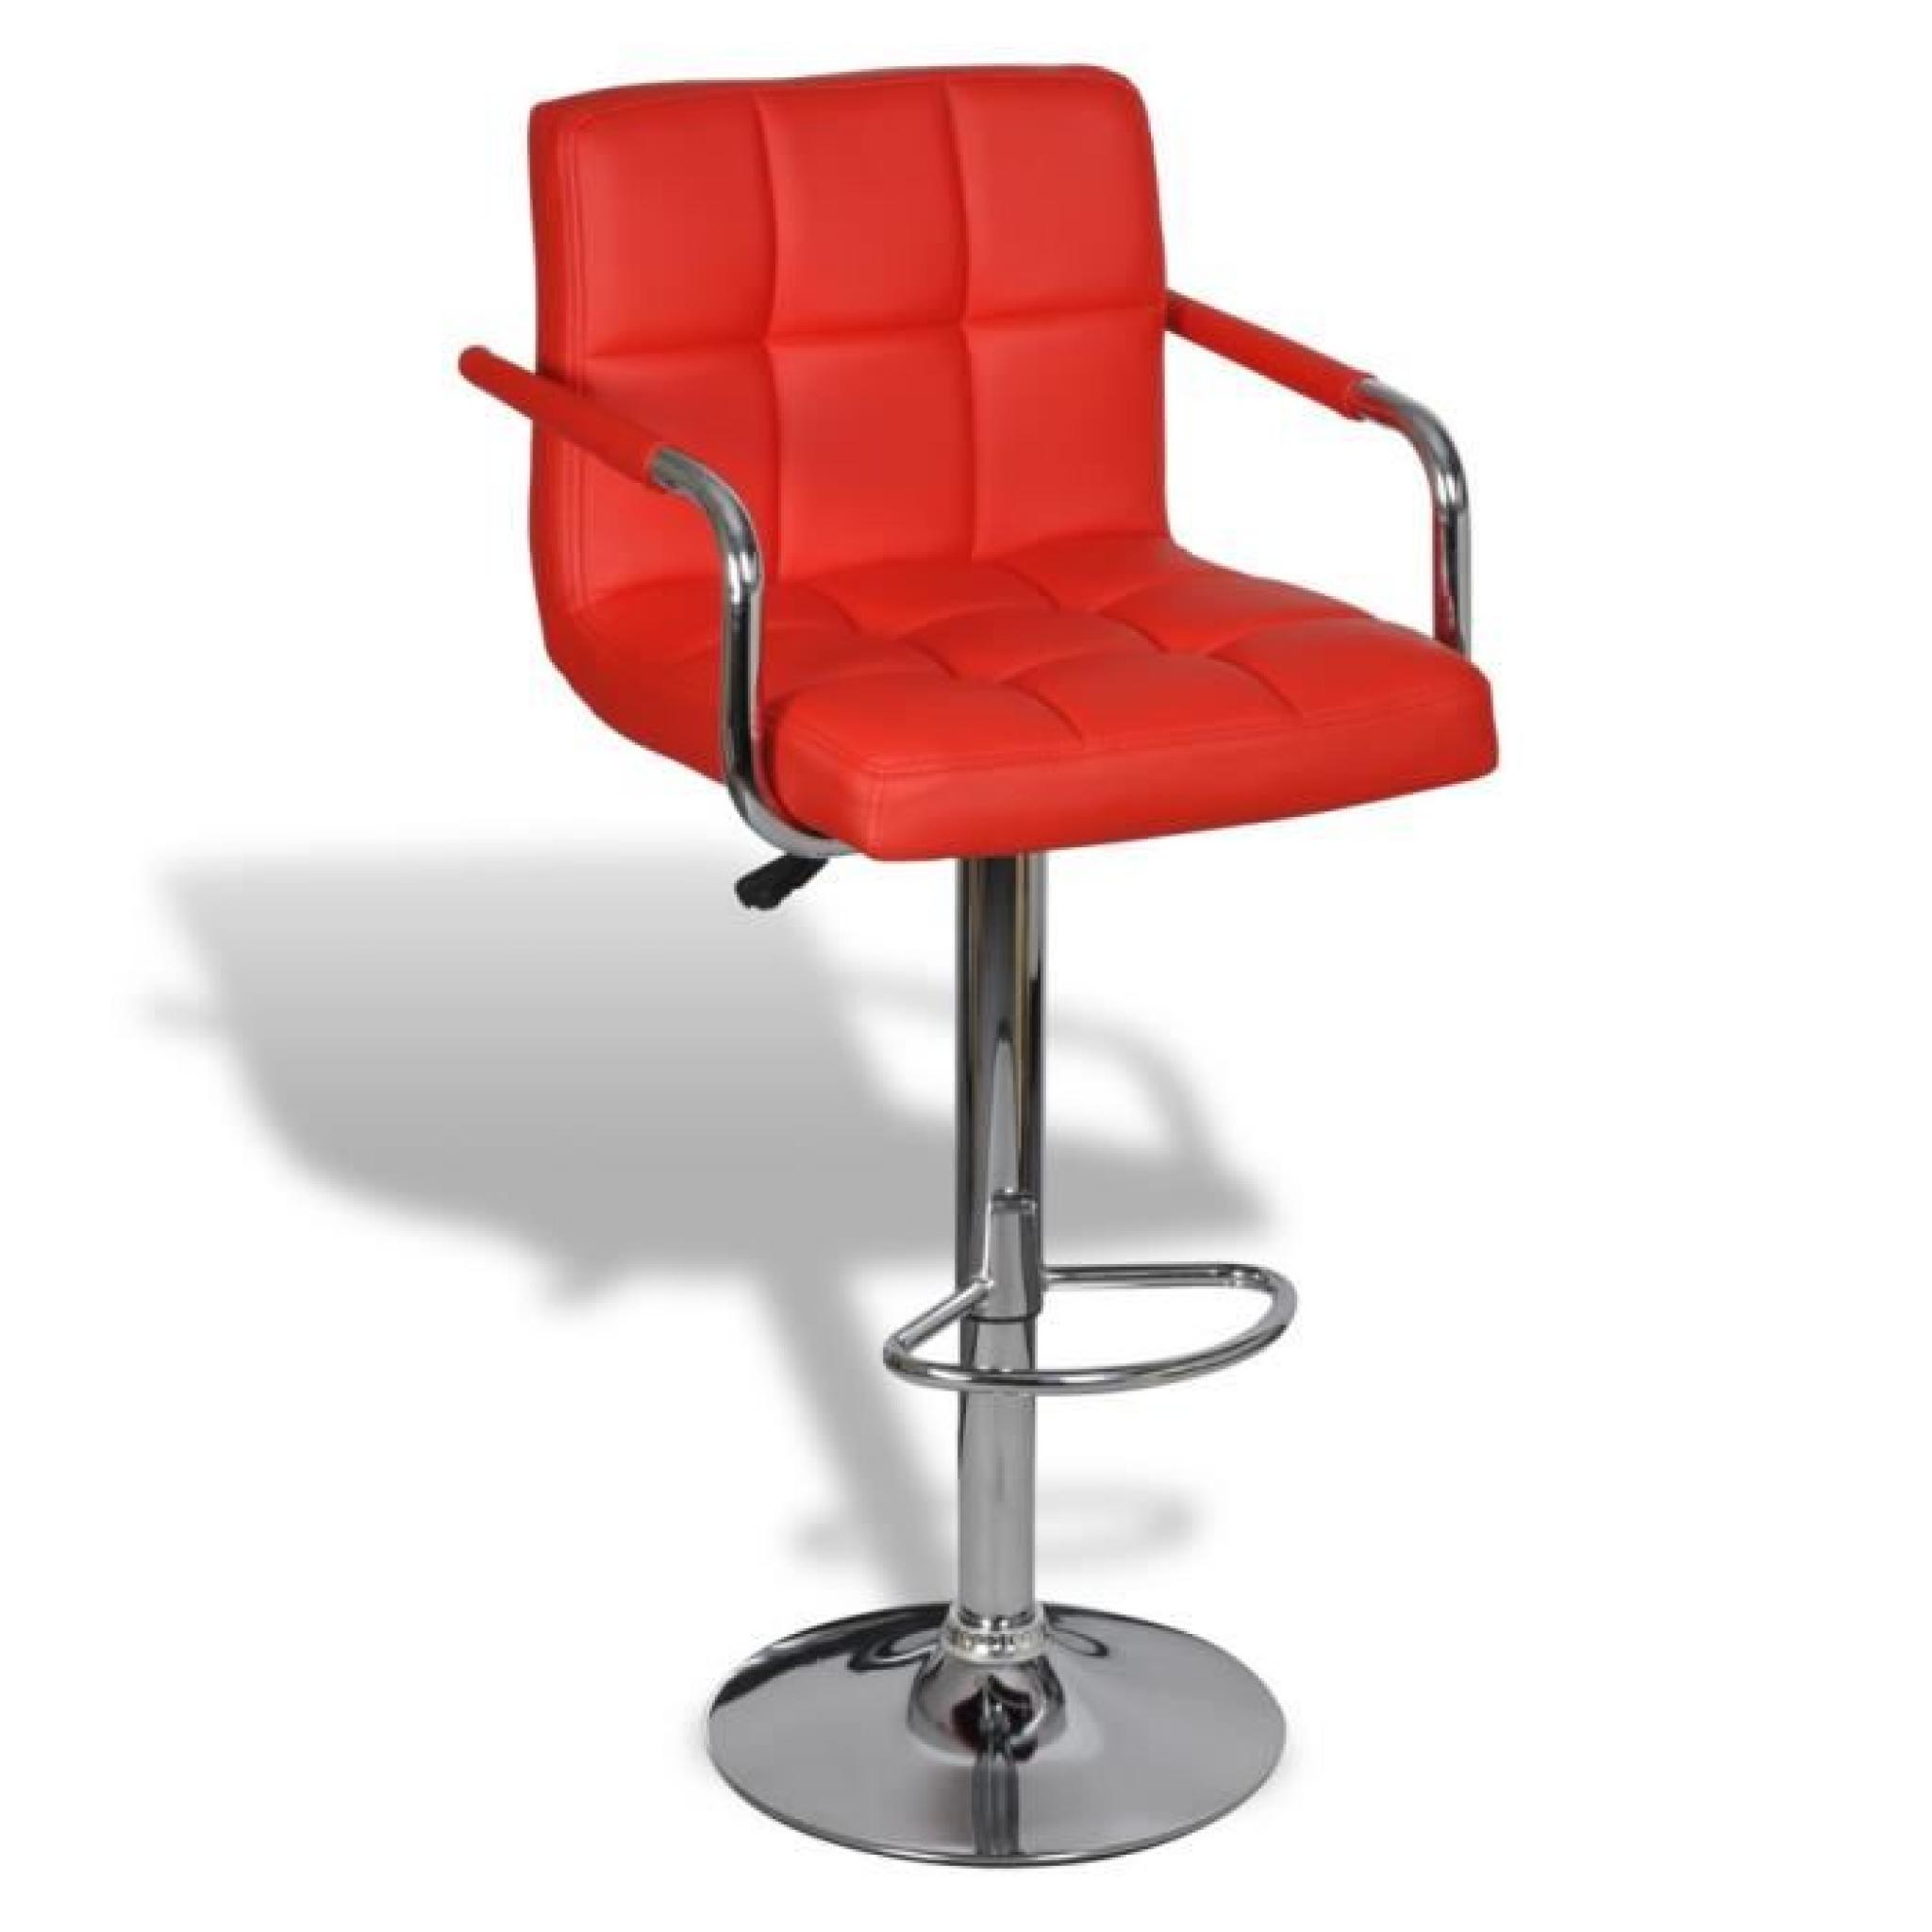 Songmics Lot De 2 Tabourets De Bar Stool Lot De 2 Tabourets De Bar Rouges Avec Accoudoirs Achat